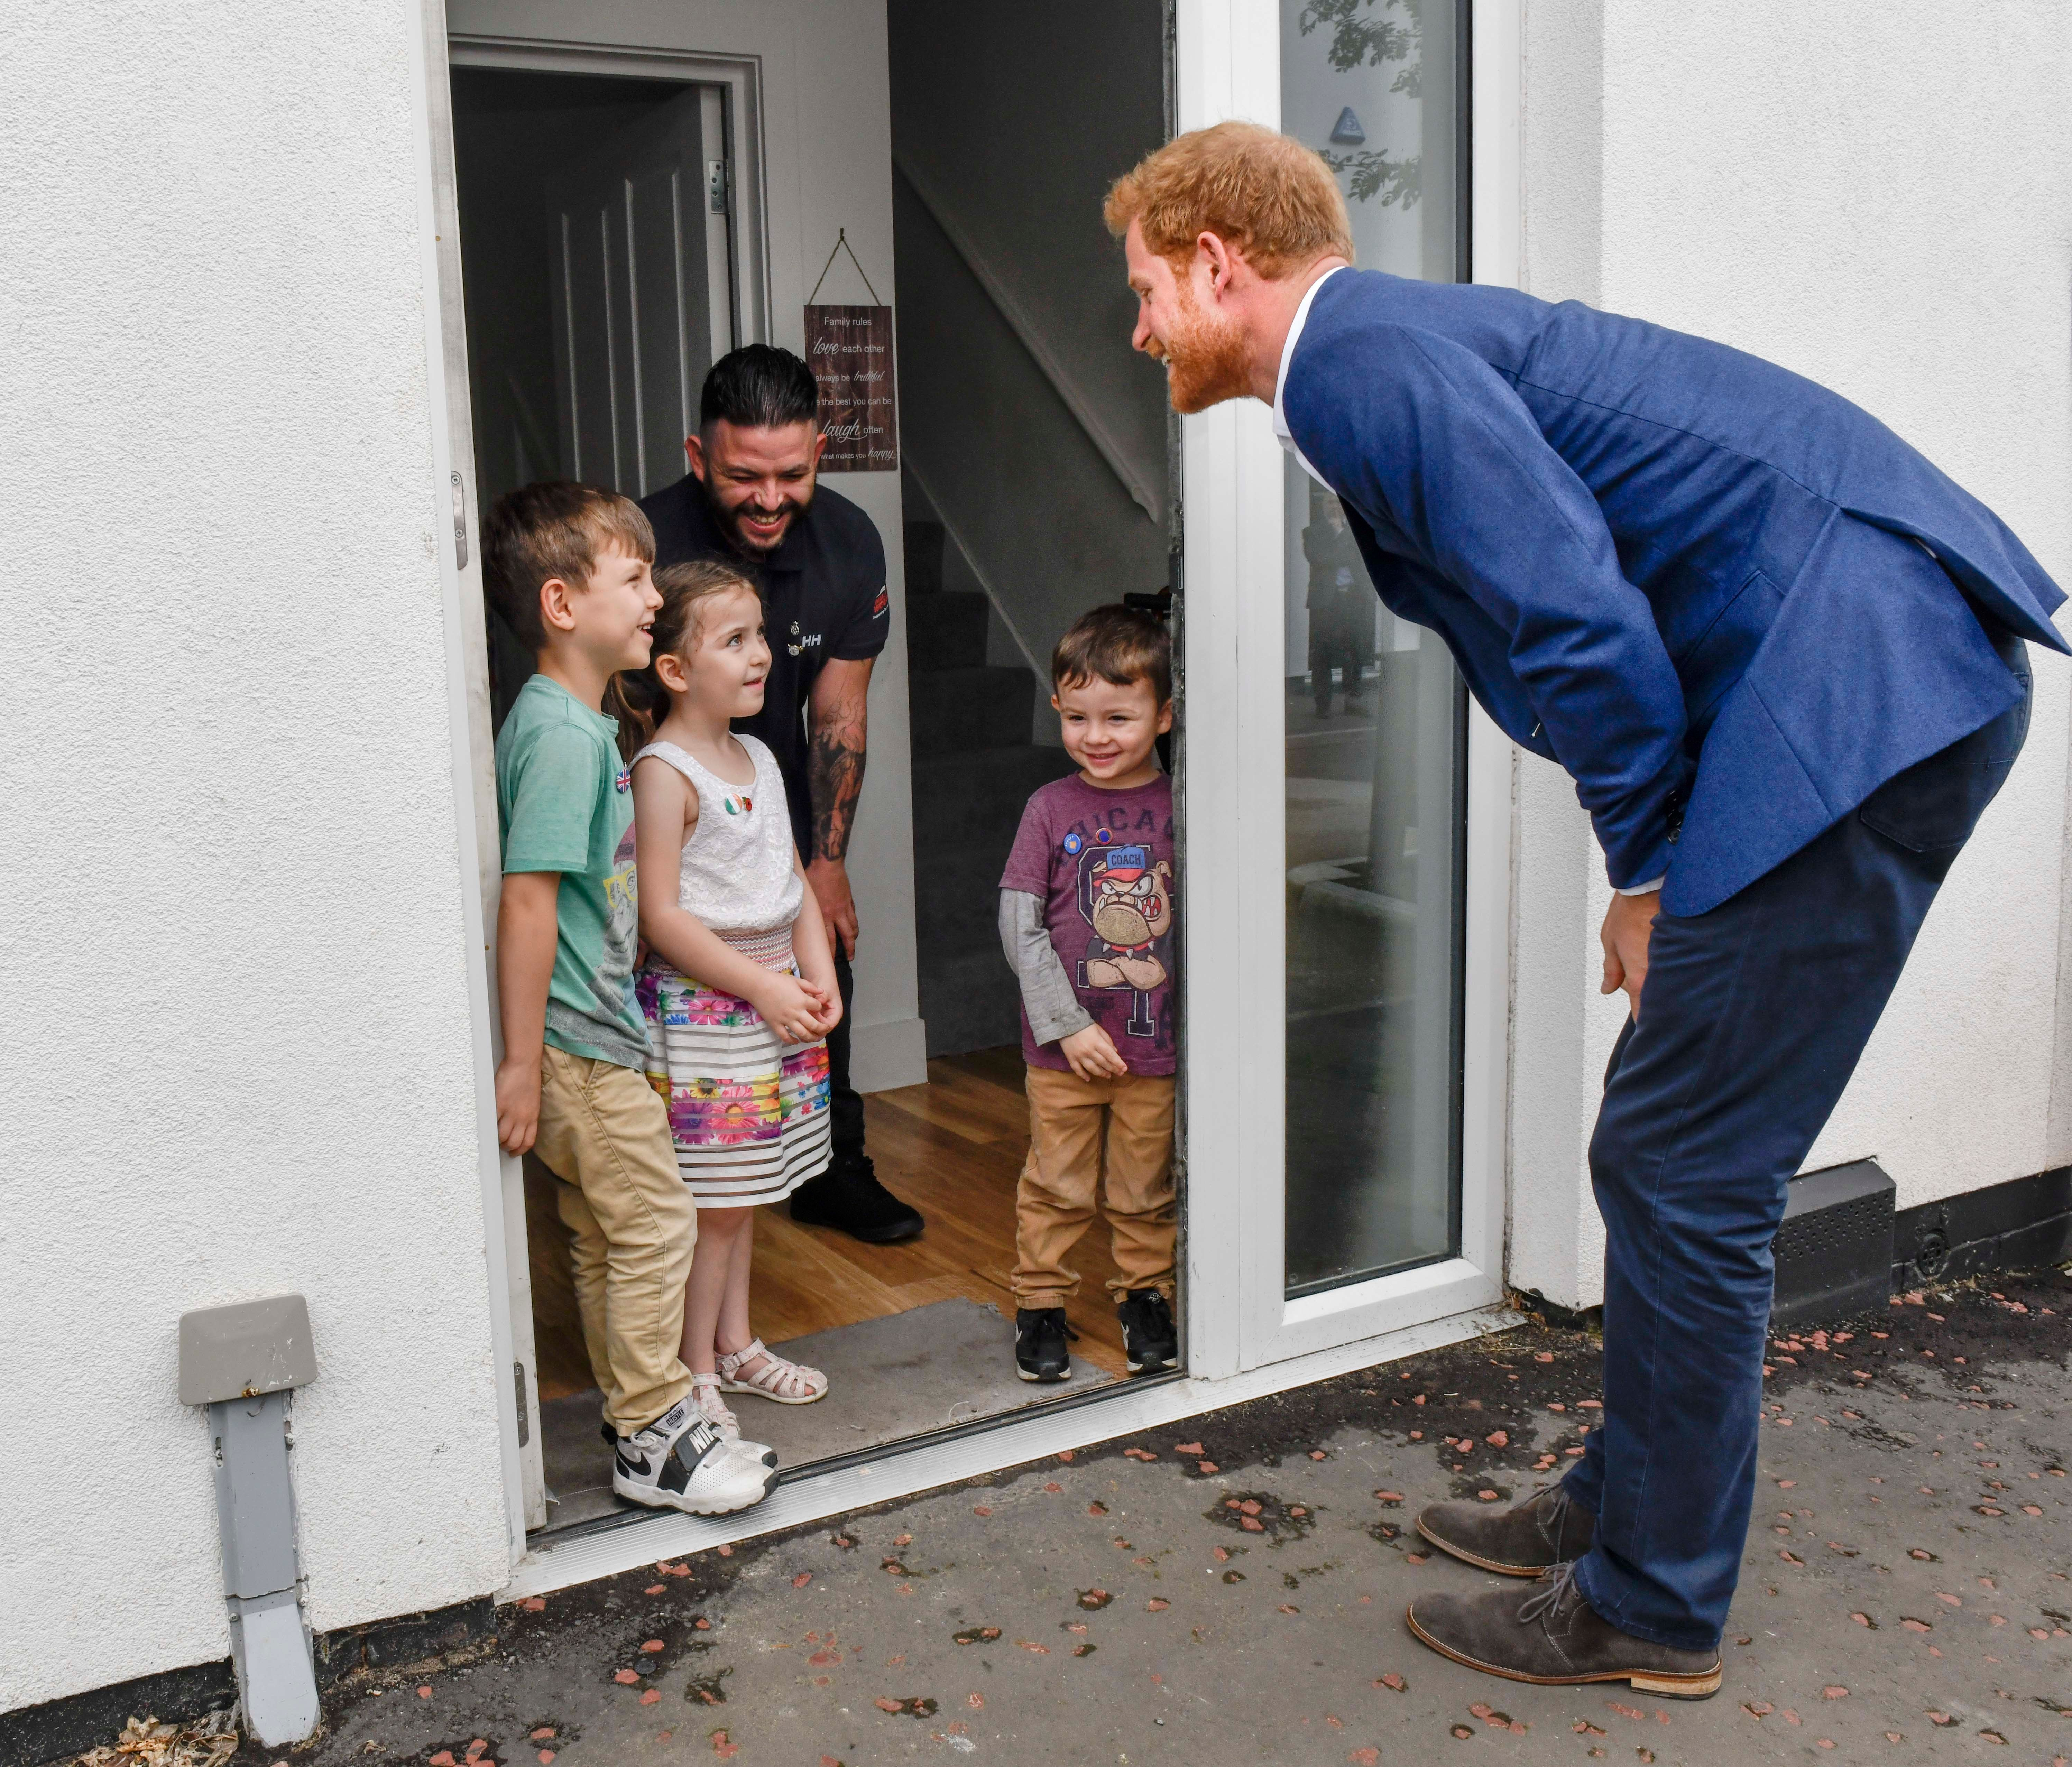 Likely telling Prince Harry he's allowed in the house.